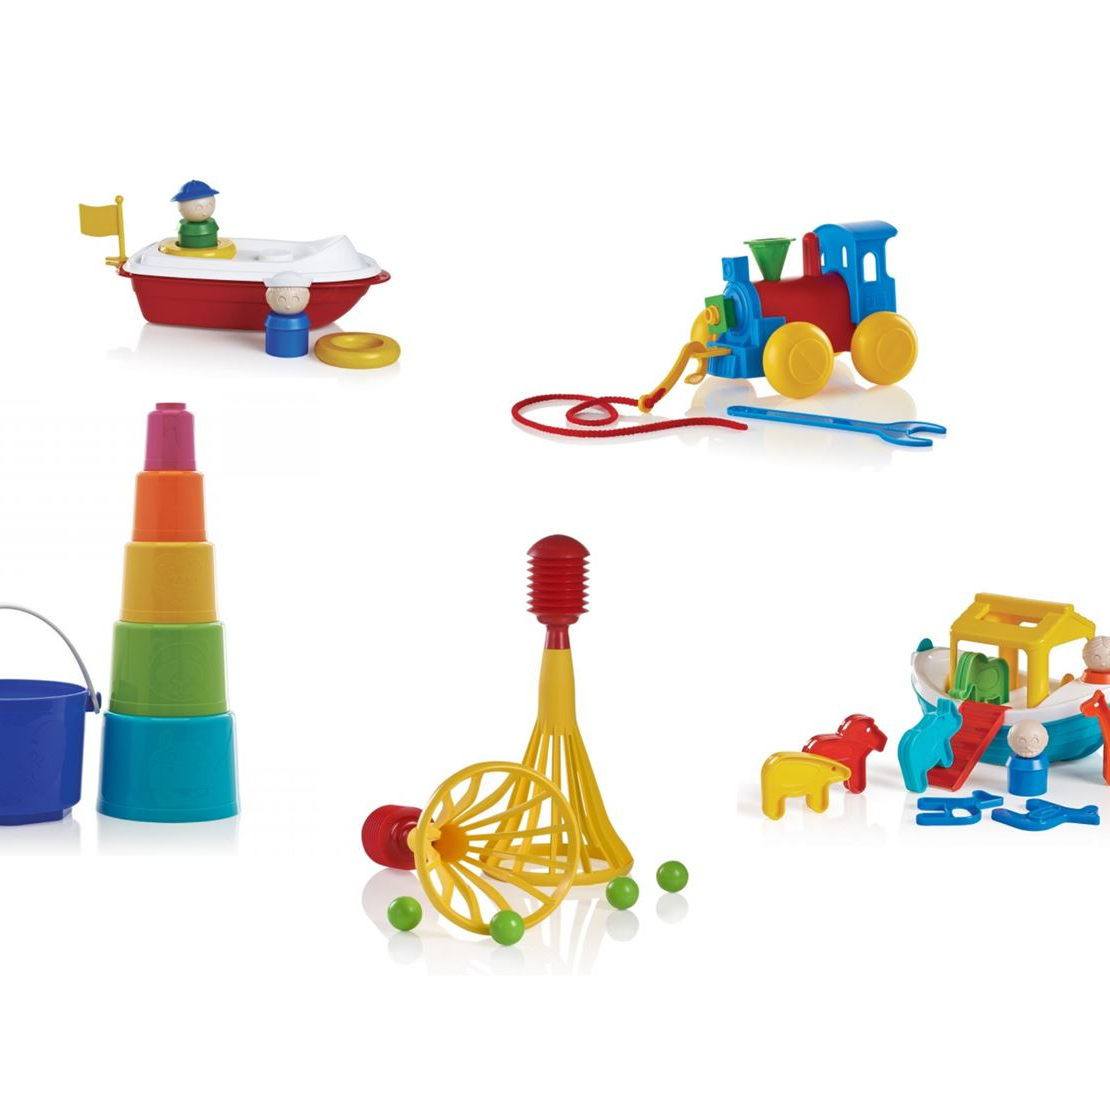 Exclusive Limited Edition Tupperware Classic Toy Set - FROM THE VAULT